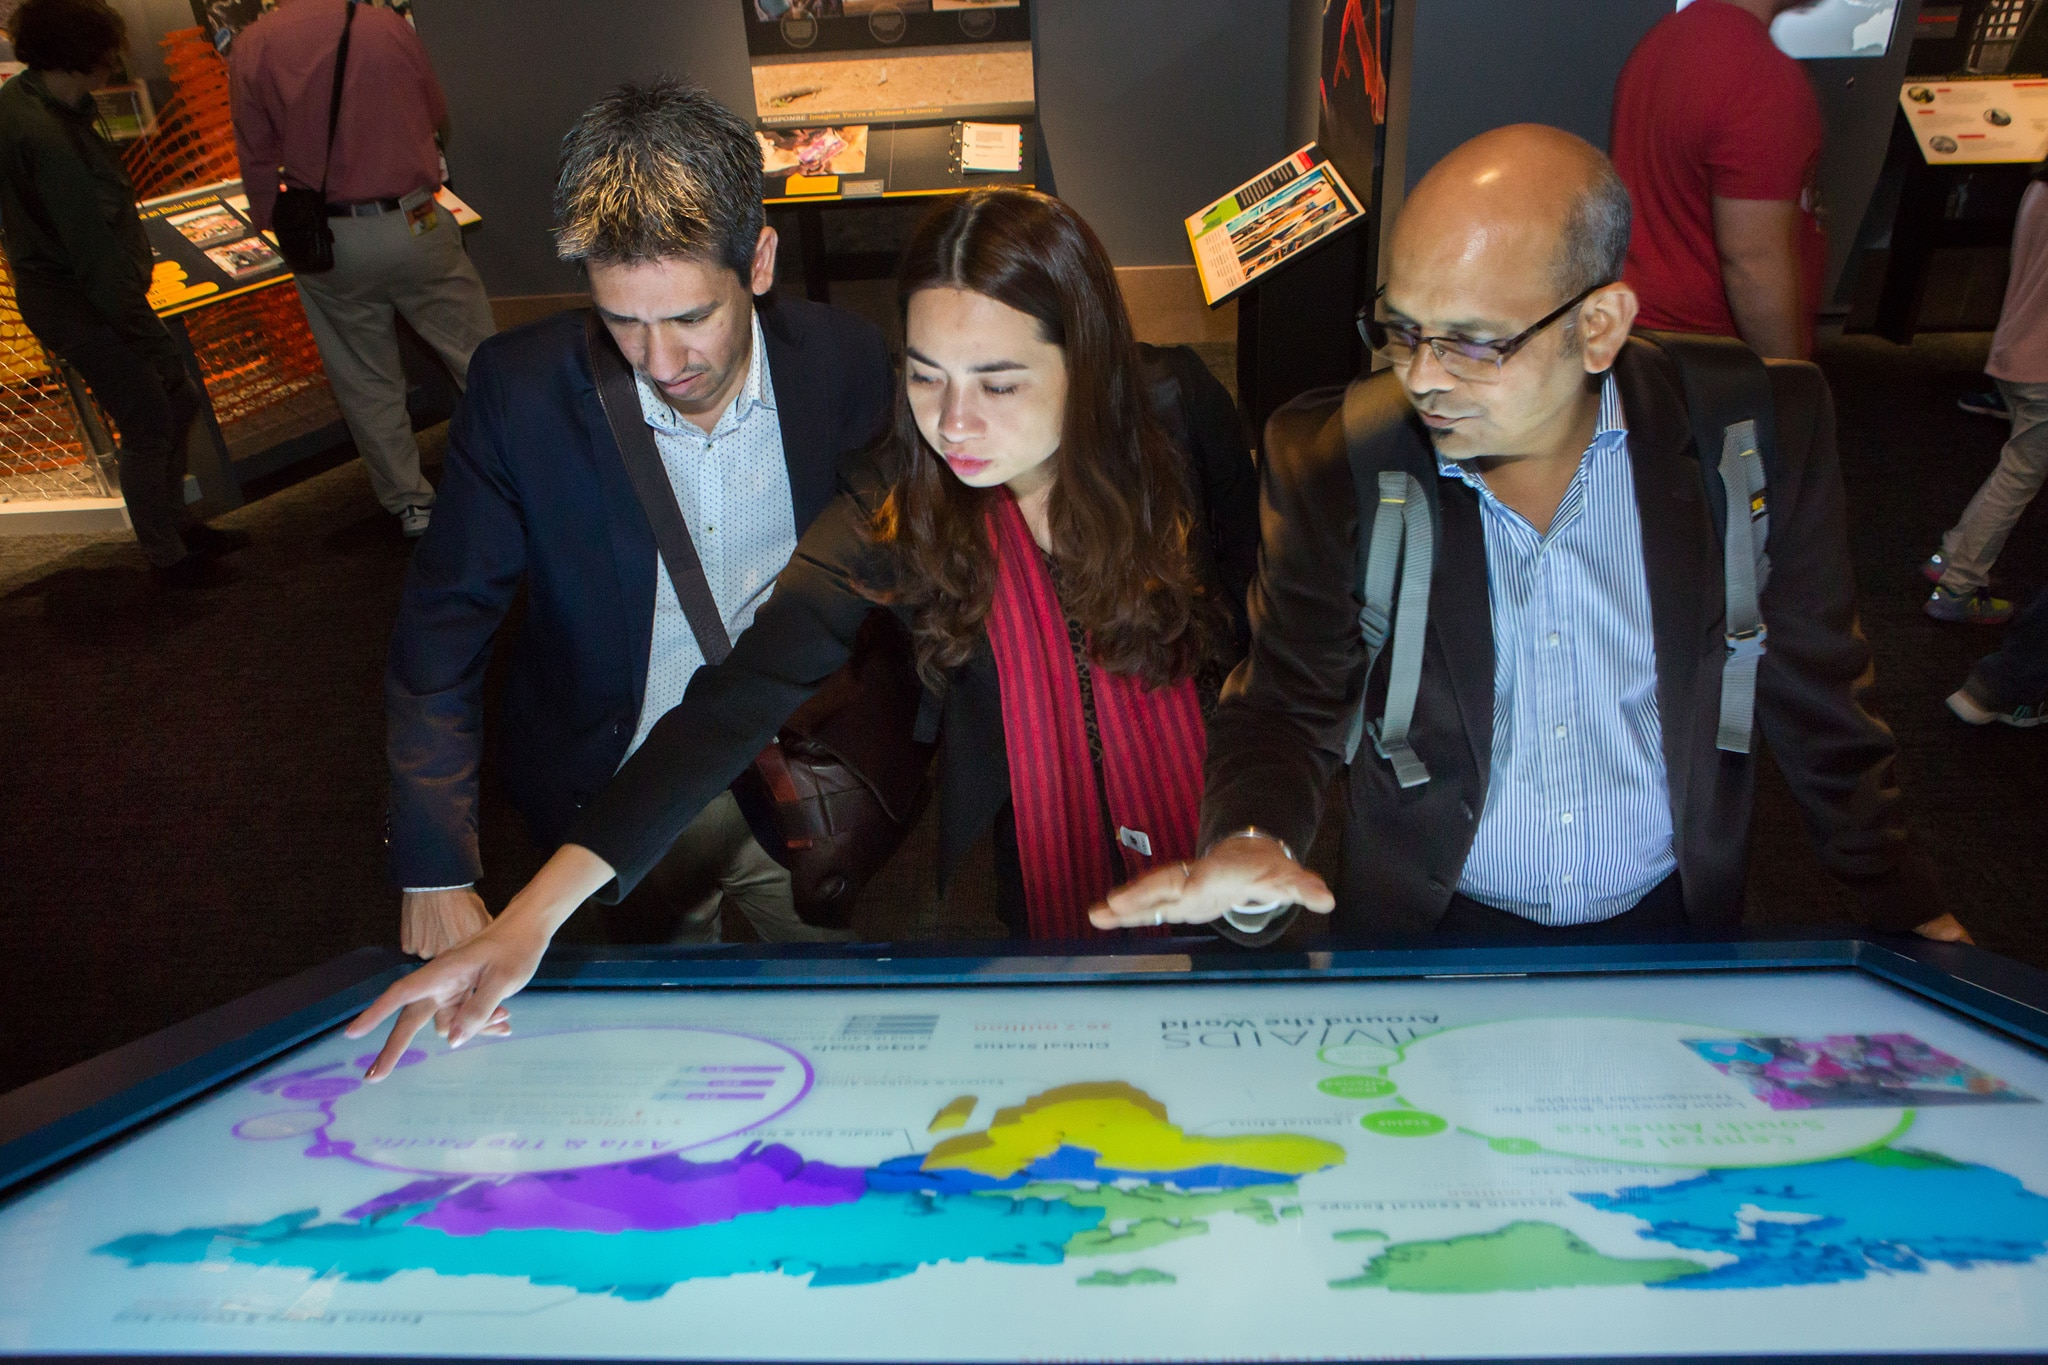 Two men and a woman leaning over an interactive map (D.A. Peterson/State Dept)